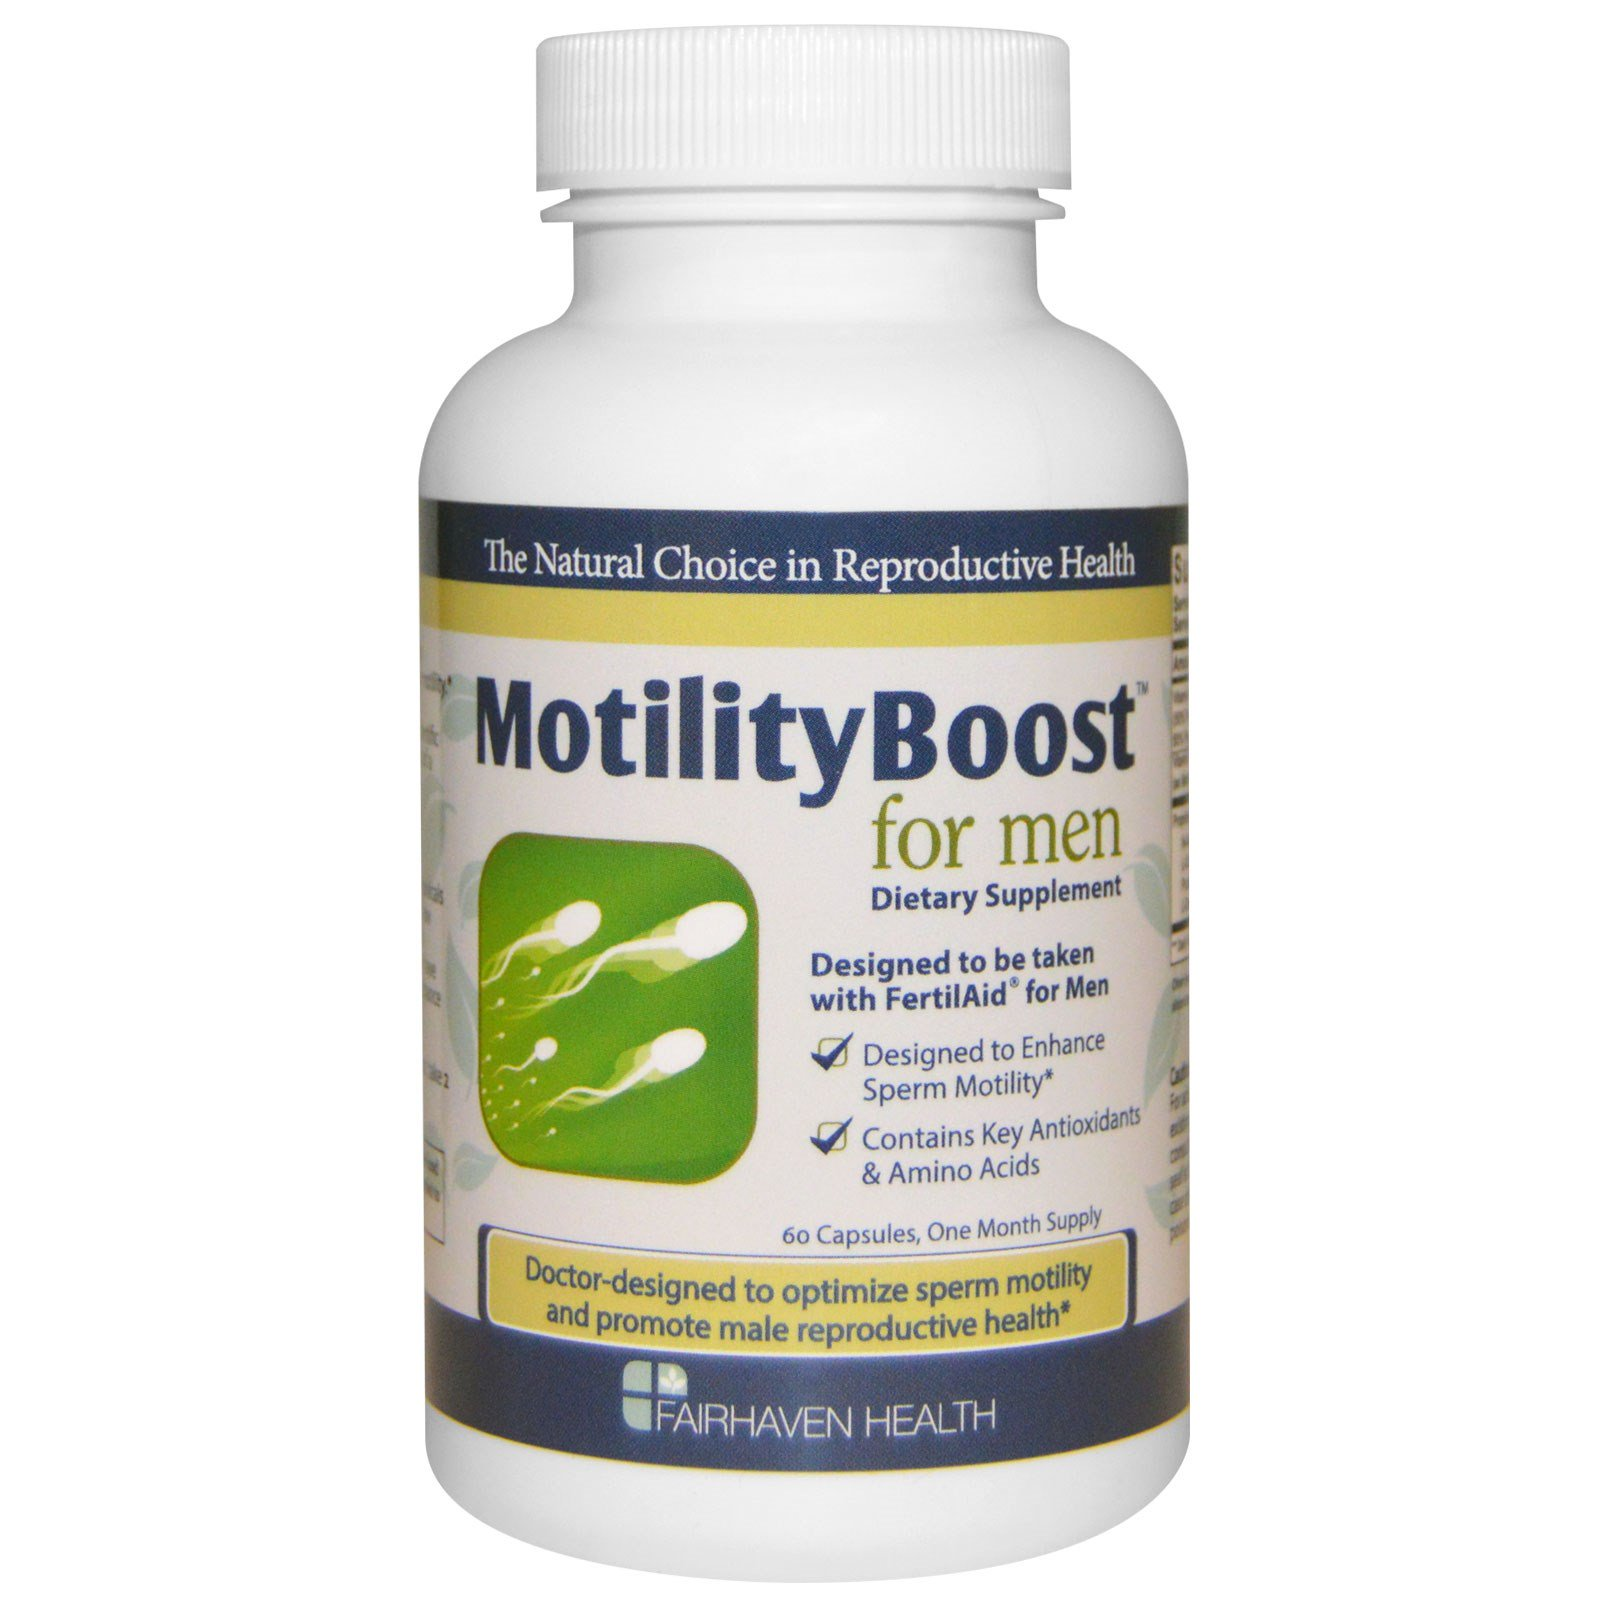 Fairhaven Health has developed two new products, CountBoost and MotilityBoost, which can be taken along with FertilAid for Men. These products contain additional nutrients that have been clinically demonstrated to benefit sperm count and motility.